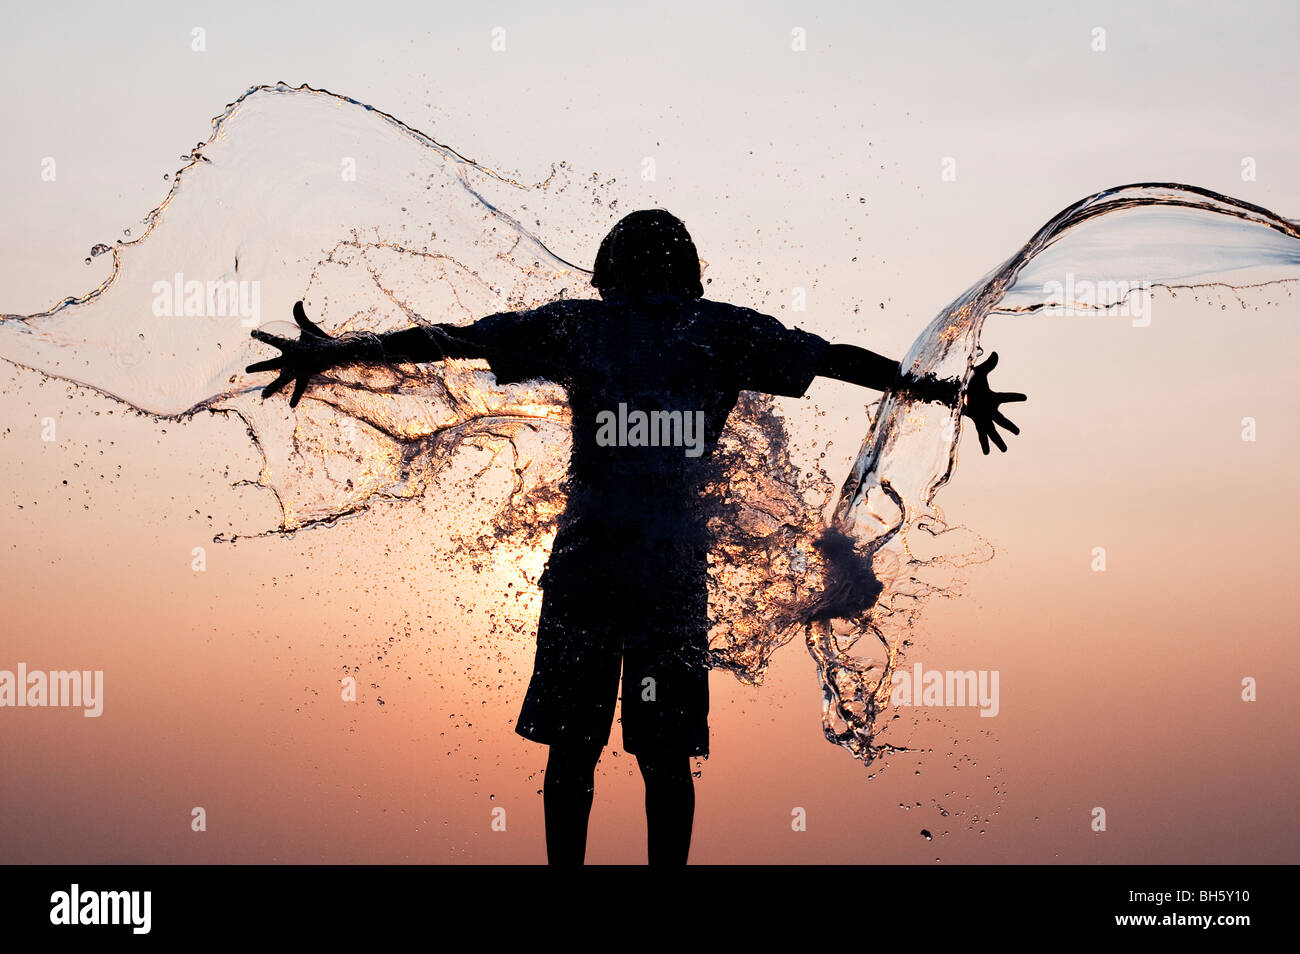 Indian boy having water thrown at him against an indian sunset. Silhouette. Andhra Pradesh, India Stock Photo